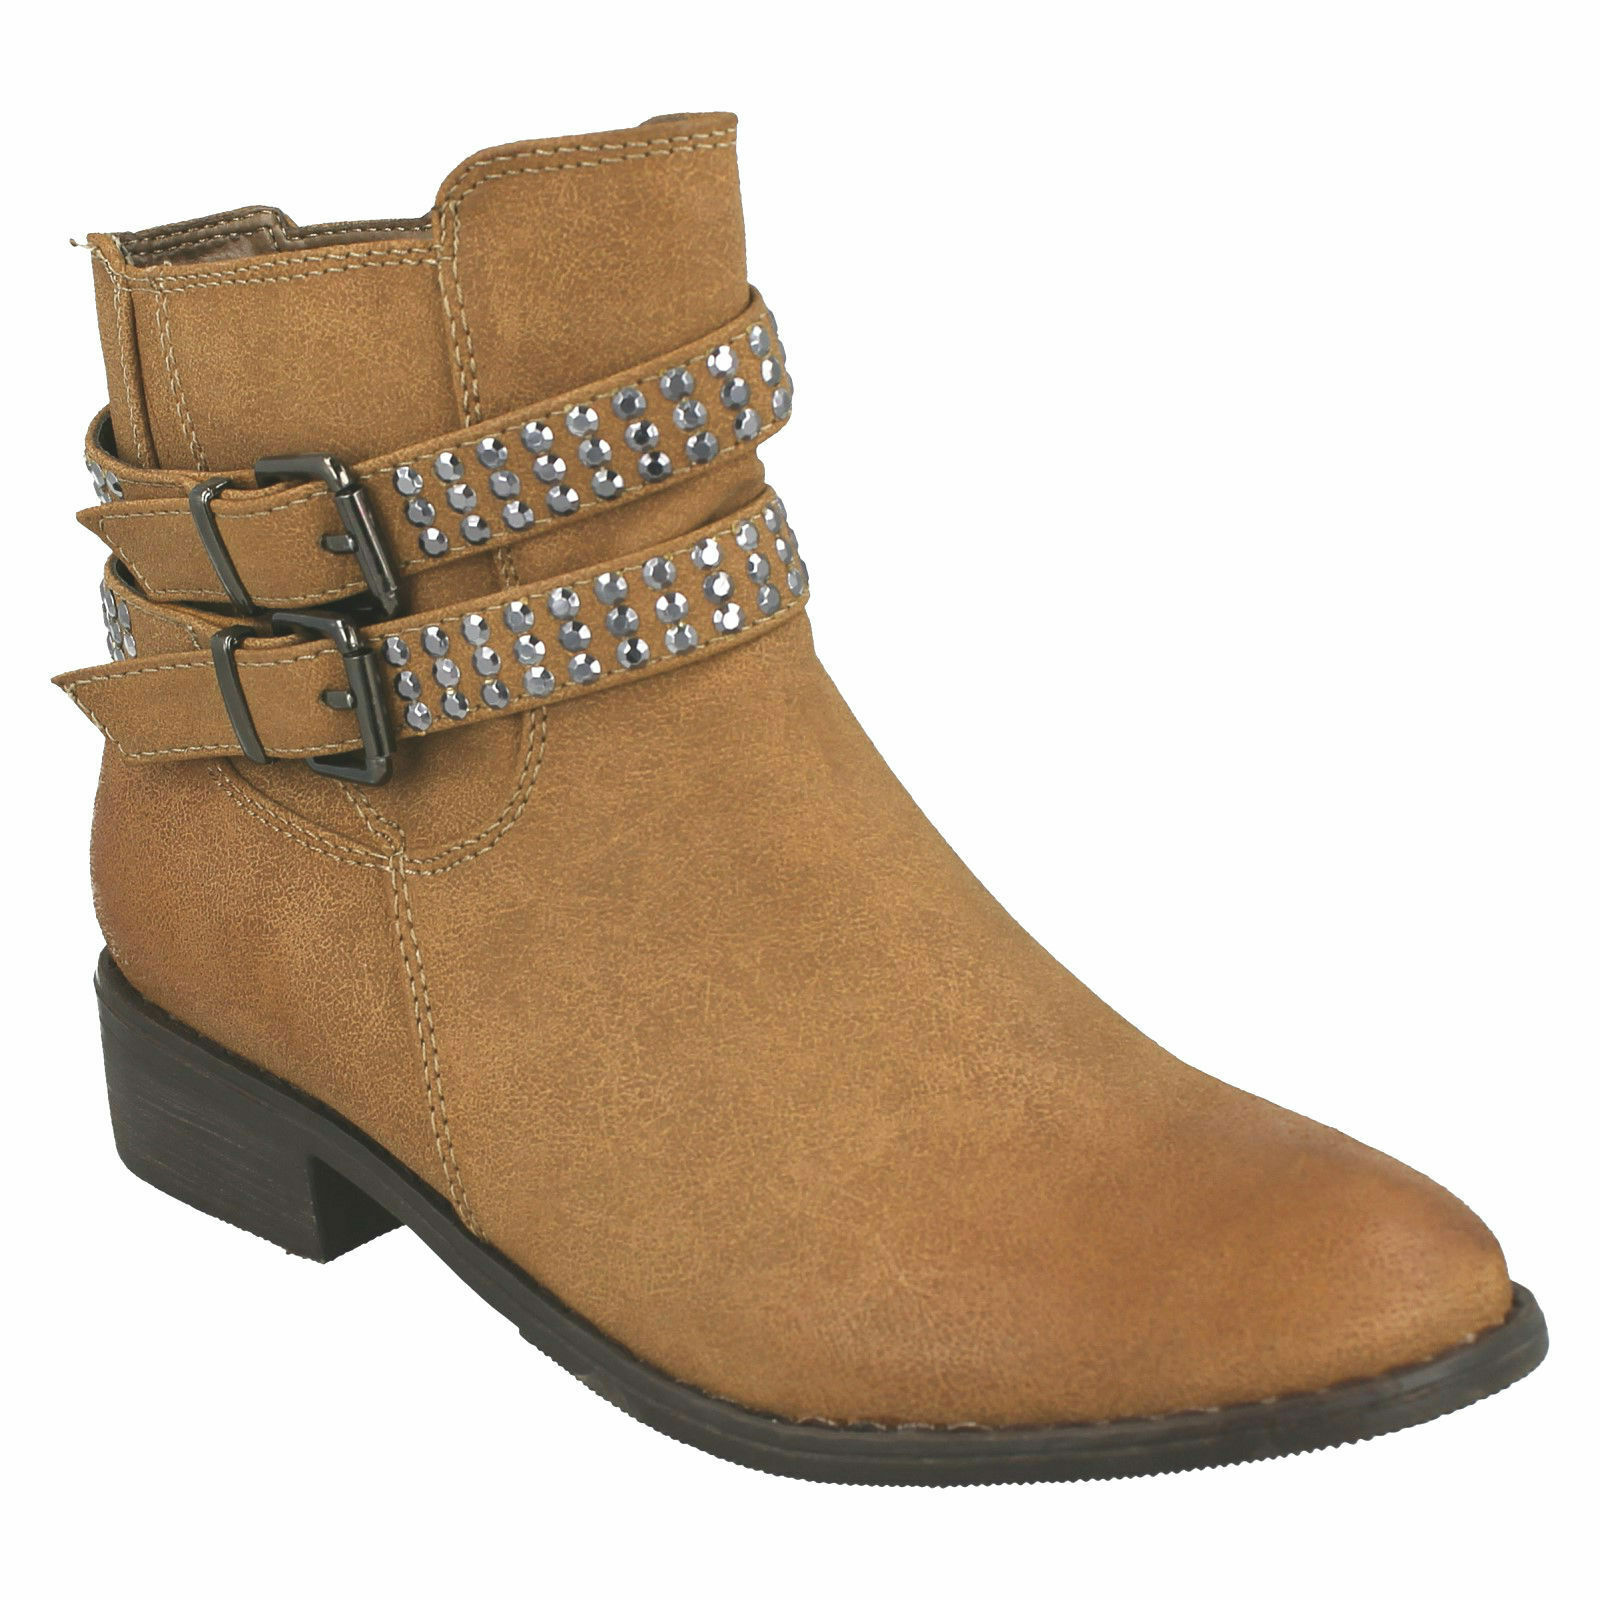 £19.99 SALE LADIES SPOT ON STUDDED BUCKLE STRAP ANKLE BOOTS LT BROWN F50182 SIZE